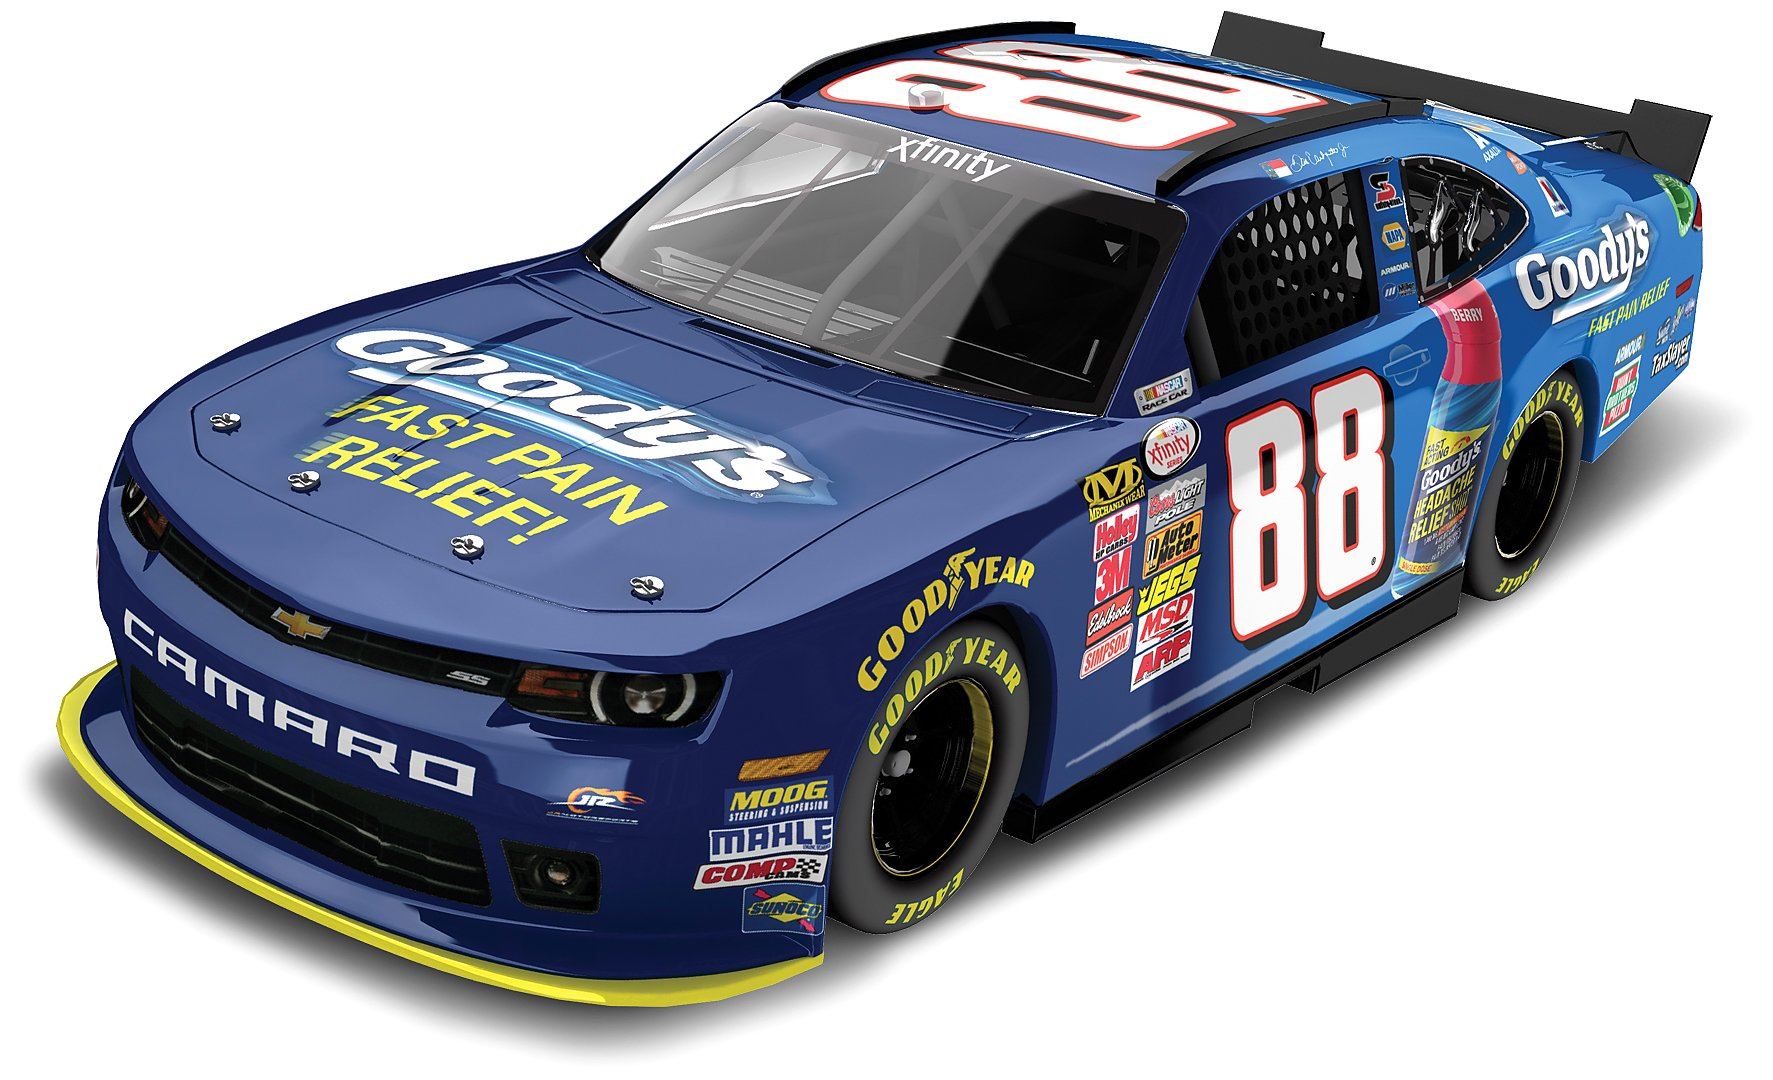 Get Quotations · Lionel Racing N885821GOEJ Dale Earnhardt Jr # 88 Goodyu0027s  2015 Chevrolet Camaro INFINITY NASCAR Series Diecast